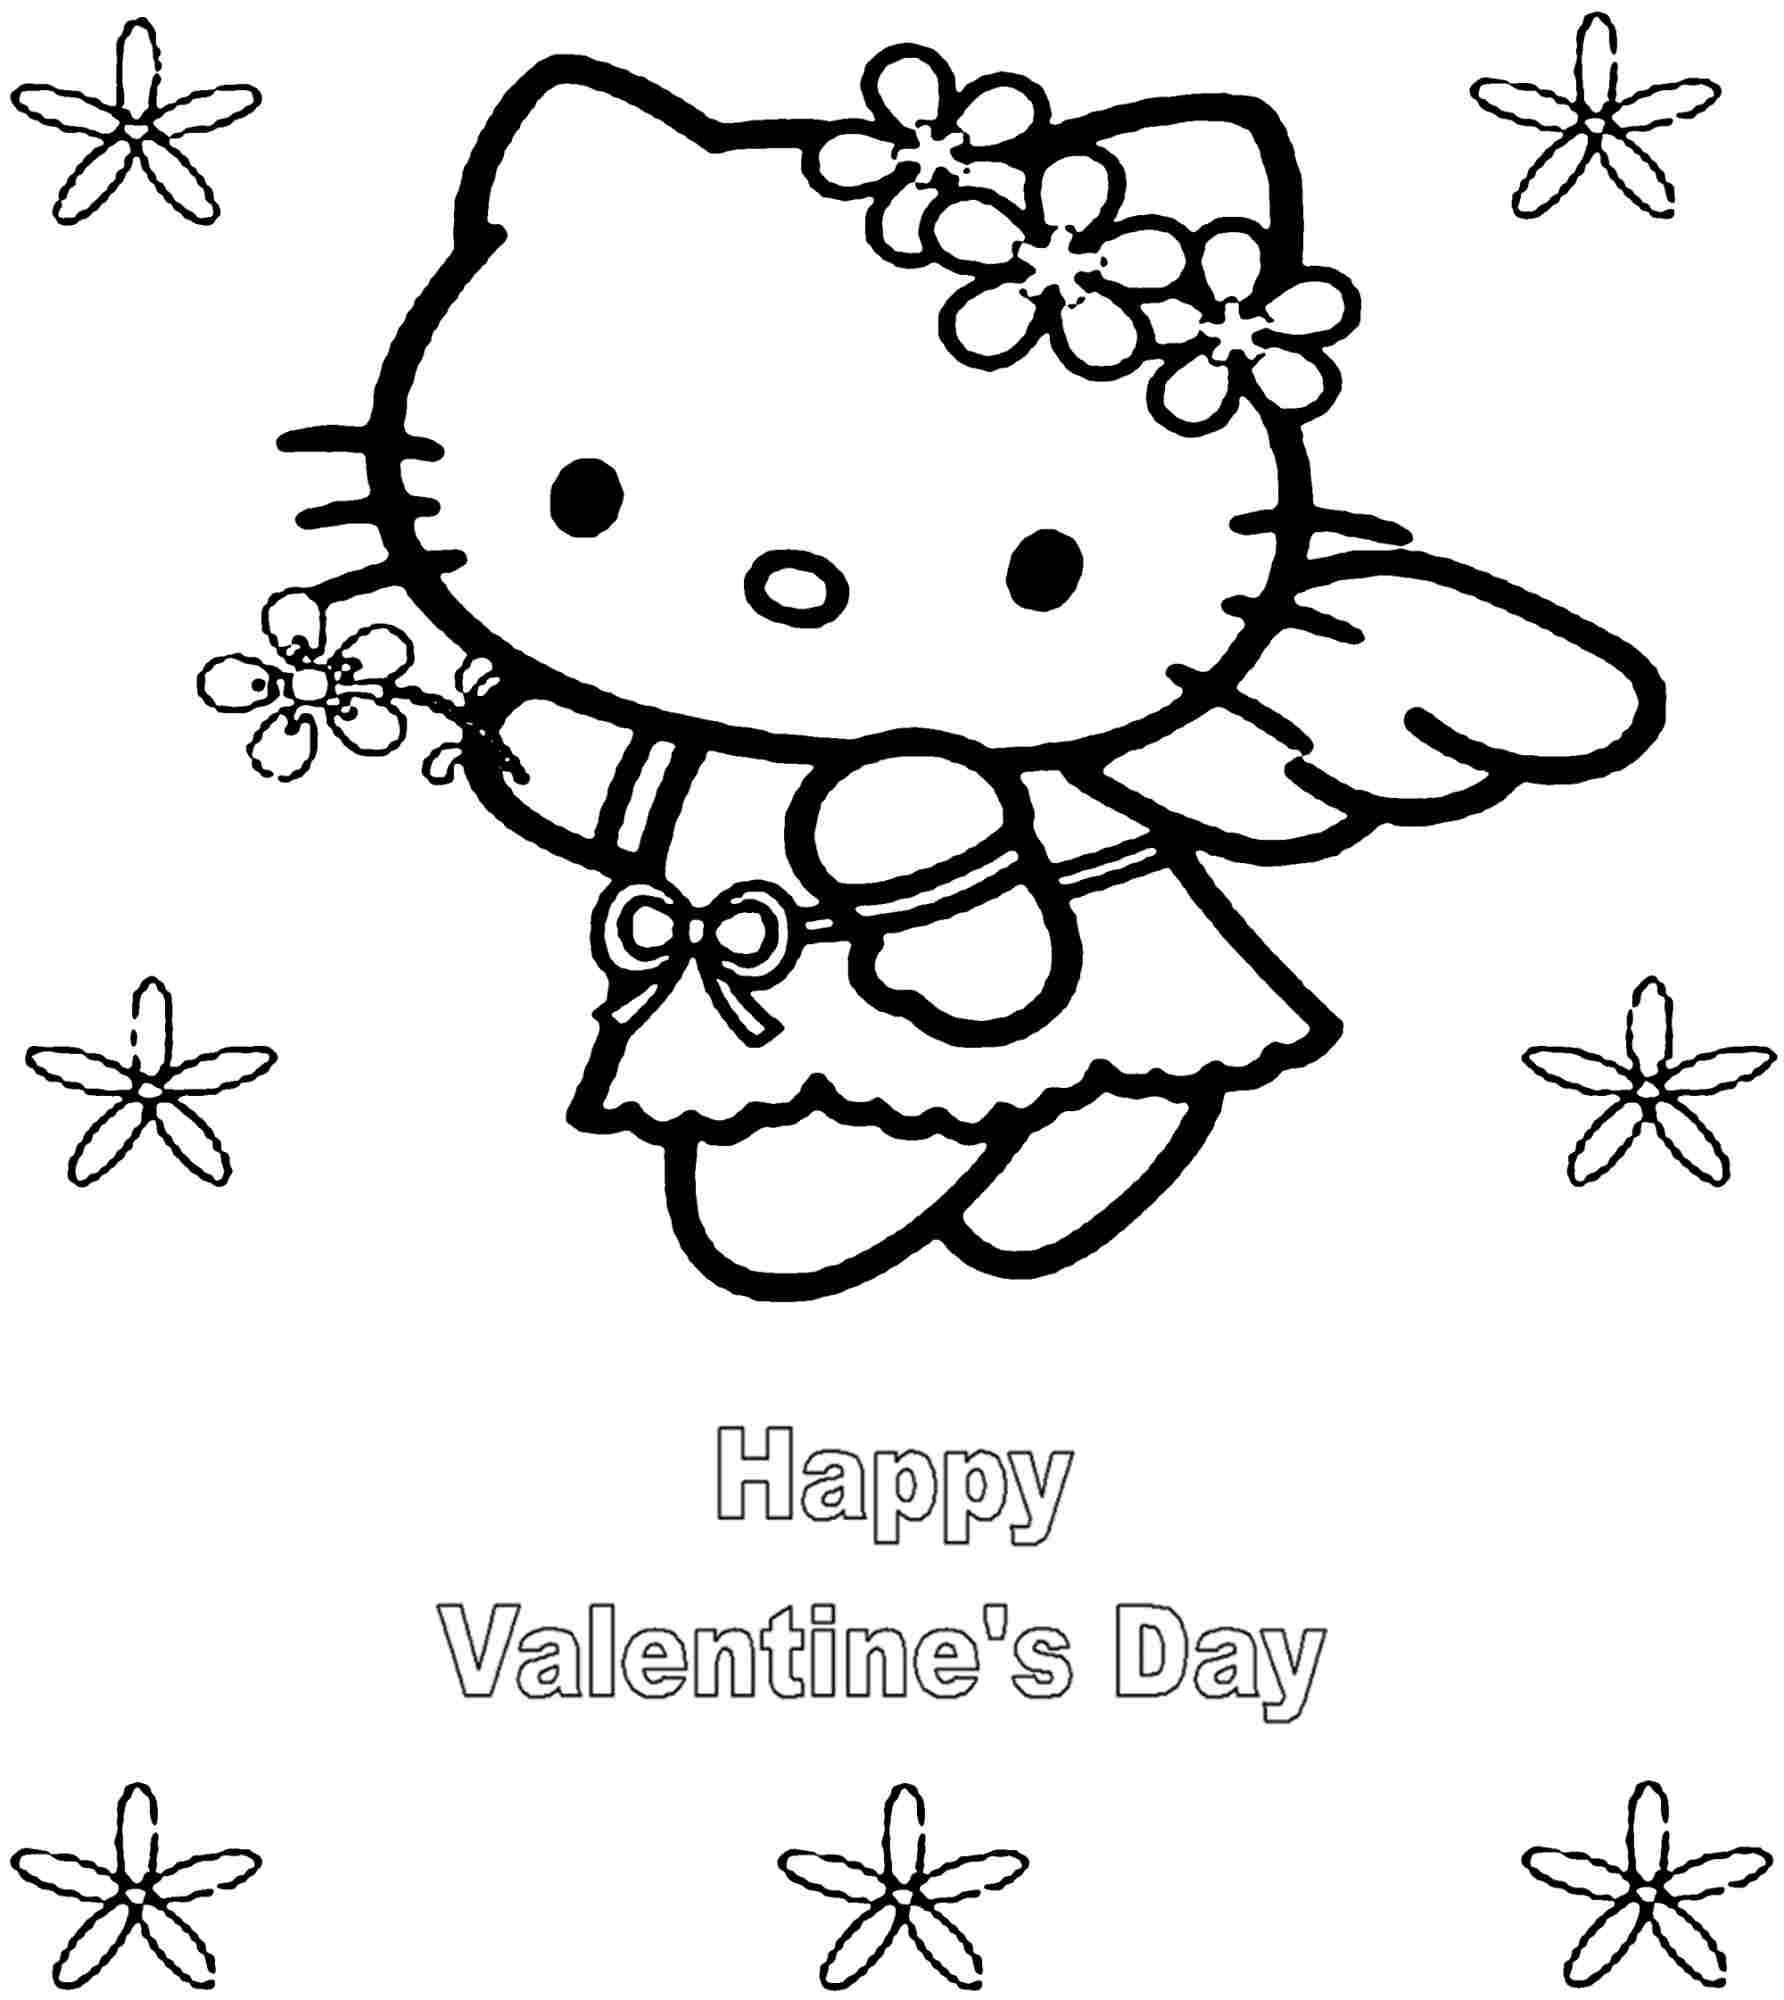 free coloring pages download name printable hello kitty valentine coloring pages vrityskuvat of hello kitty